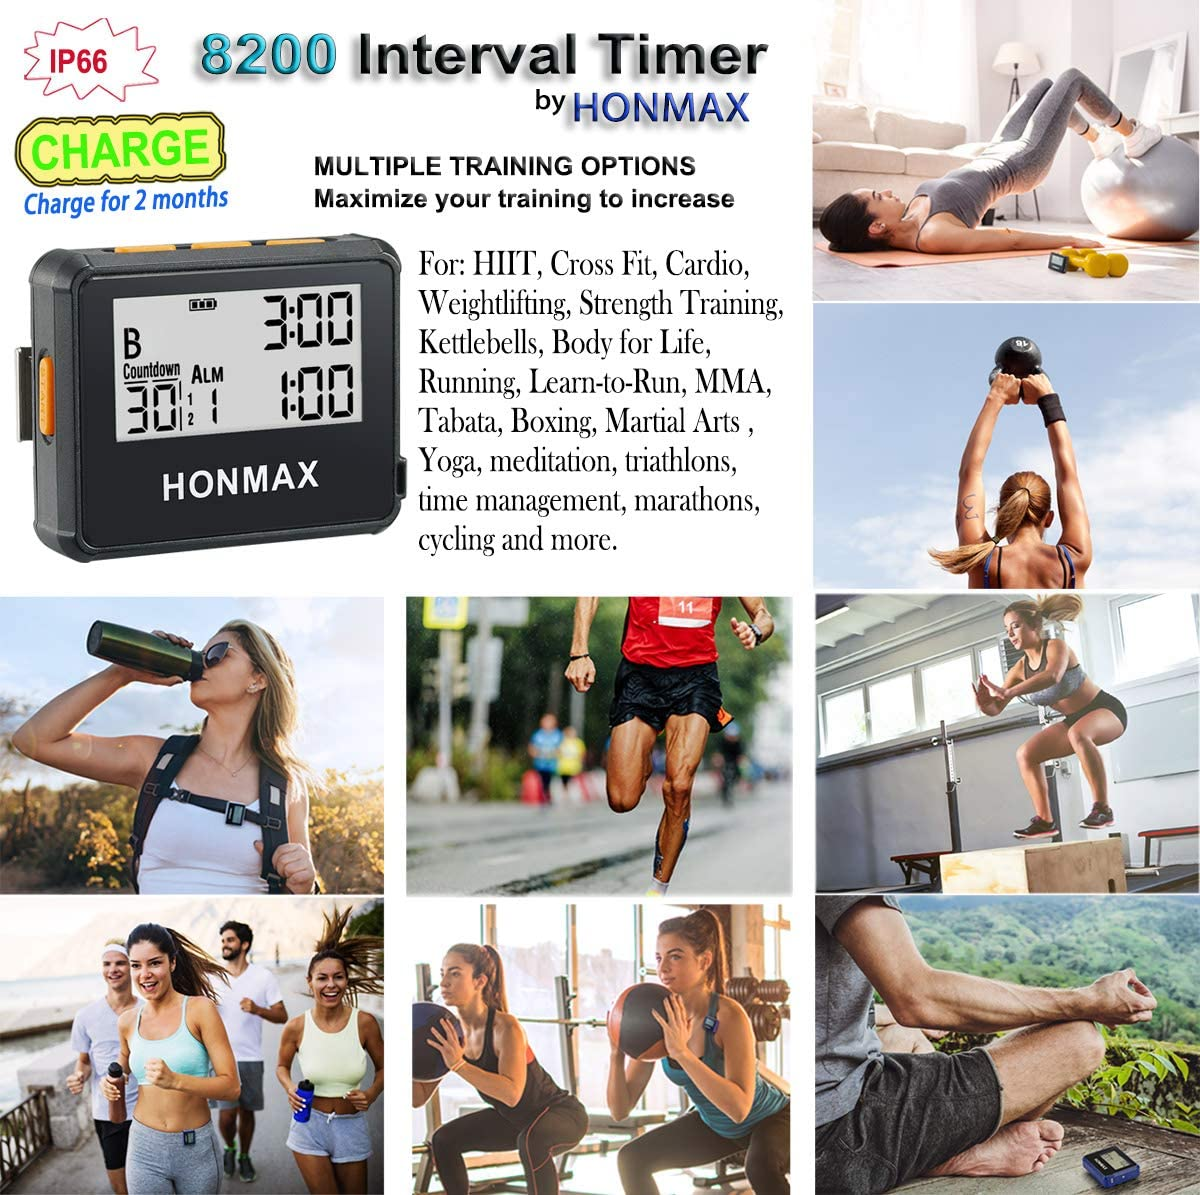 Honmax Charge IP66 Programmable Interval Timer & Stopwatch | Timers for Kitchen, HIIT, Running, Sports and Outdoor Exercise | Countdown up to 100 ...